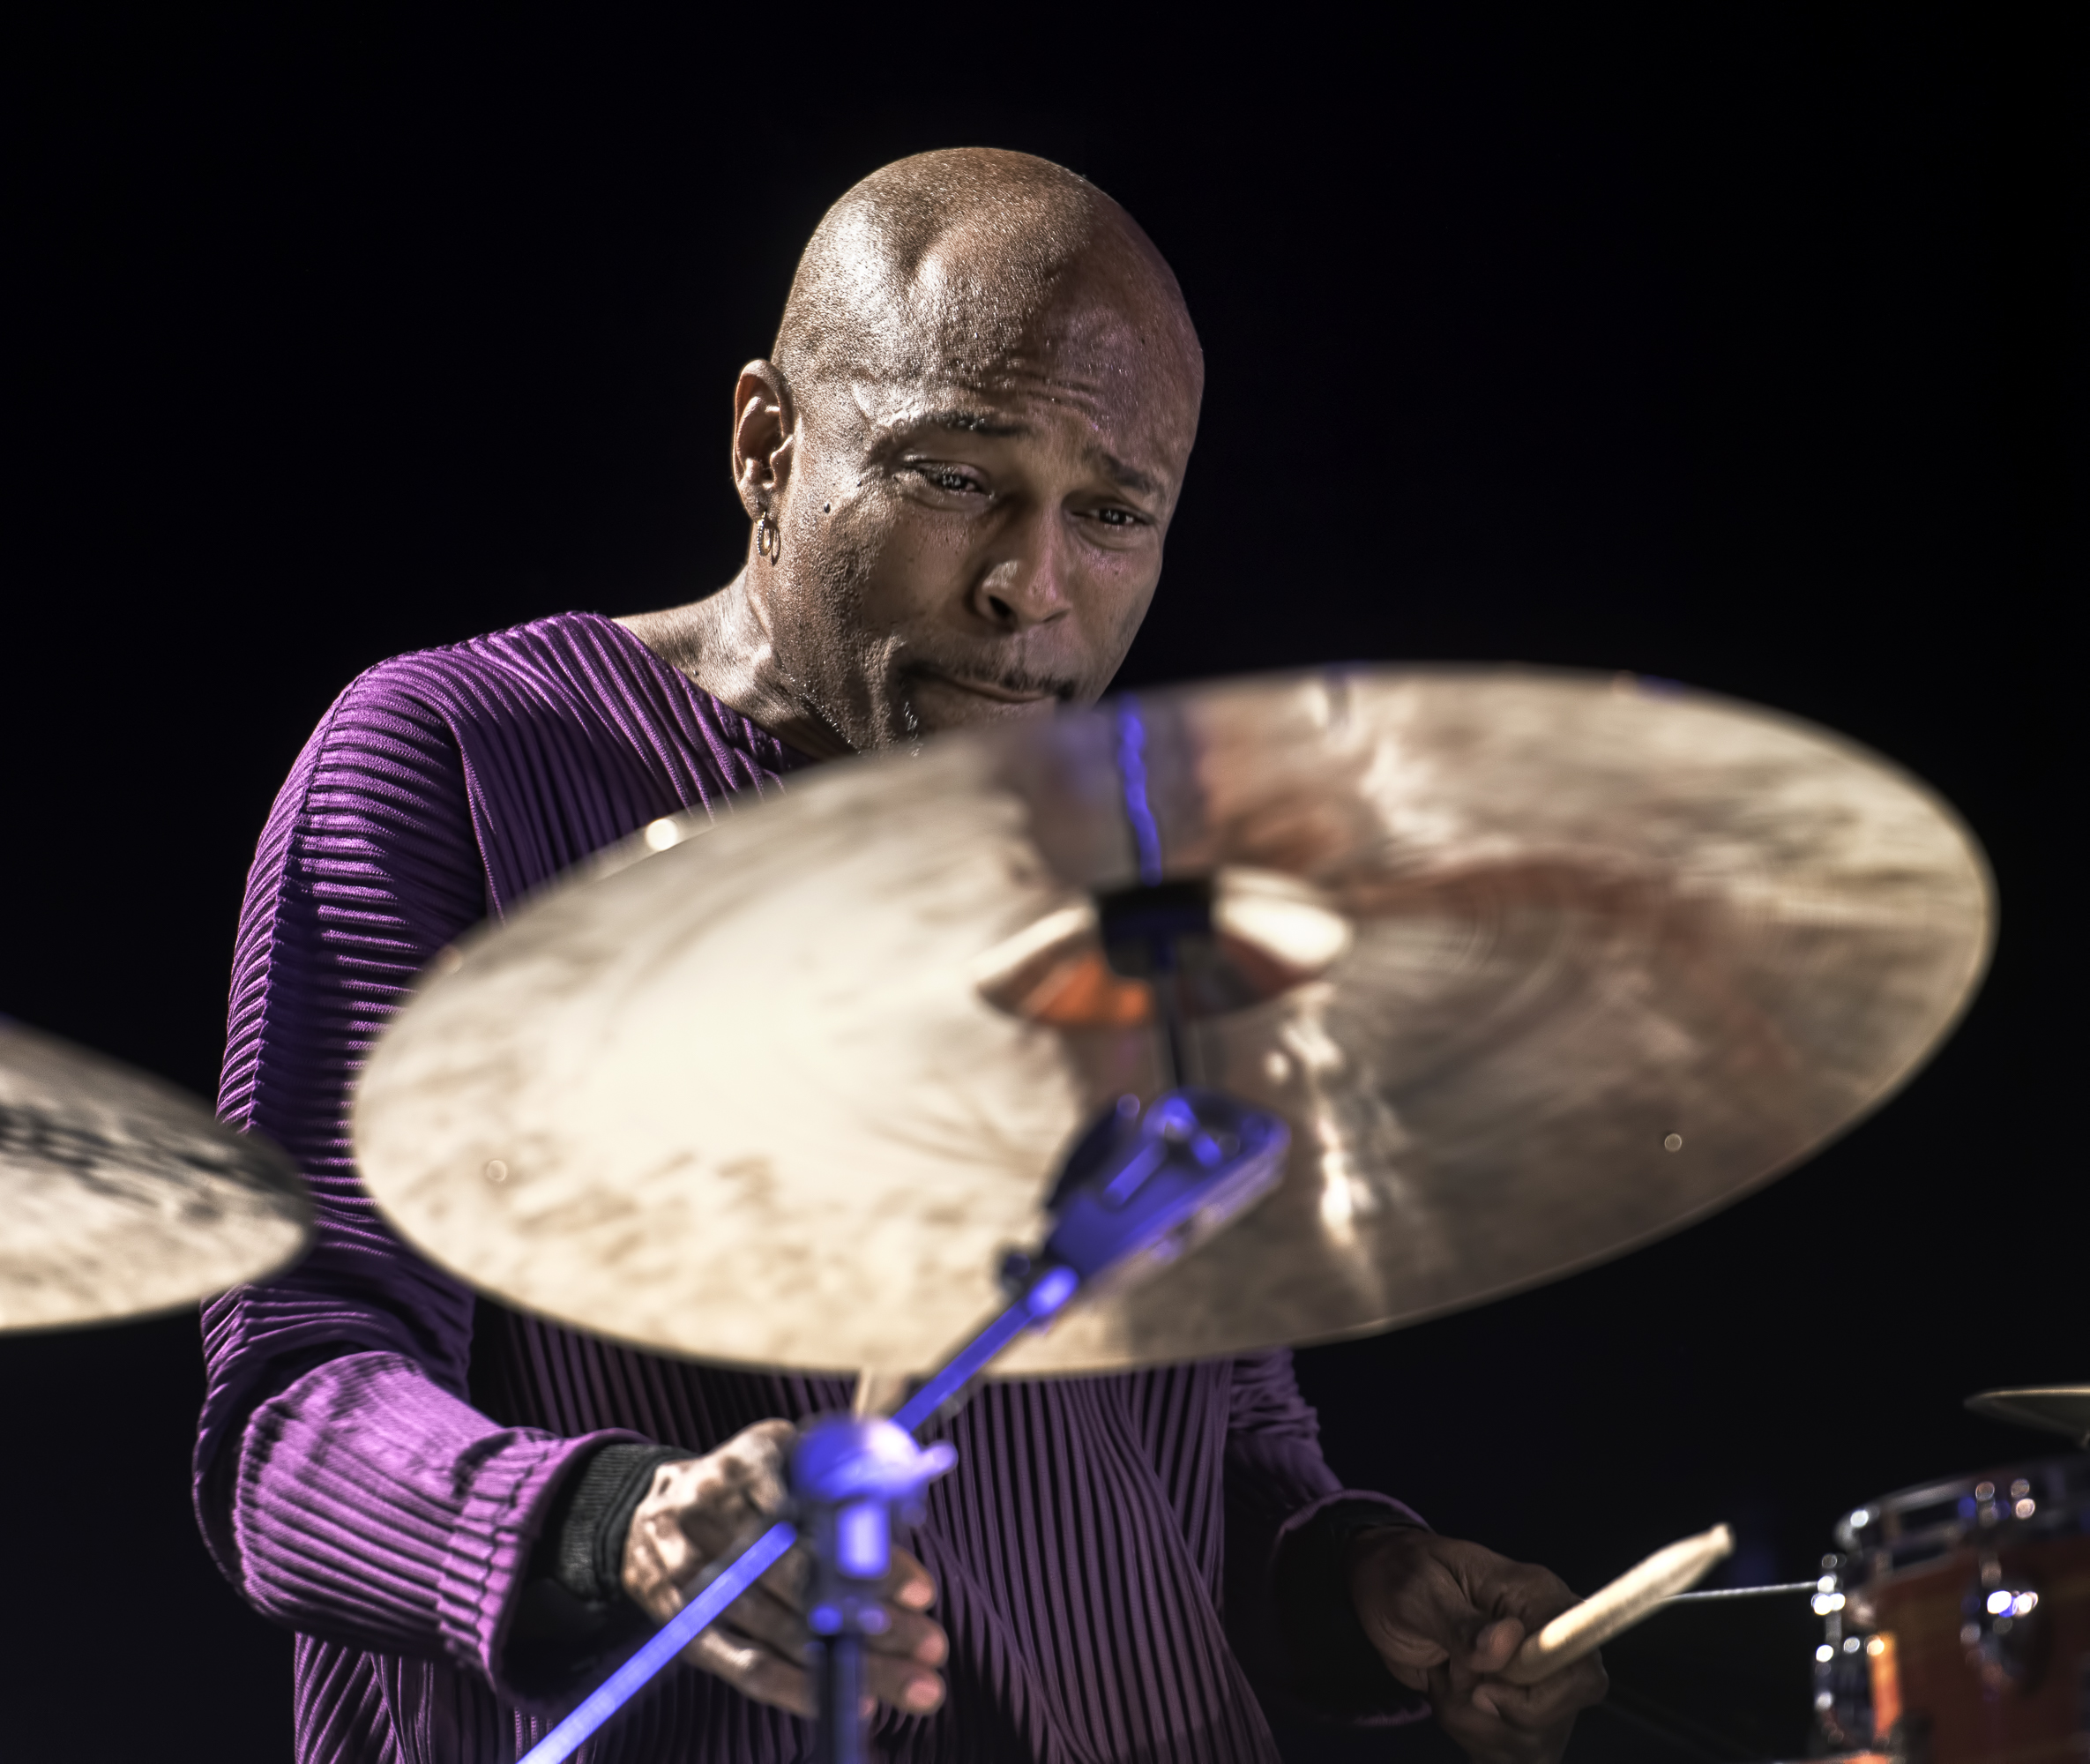 Rudy Royston with the Tia Fuller Quintet at the Monterey Jazz Festival